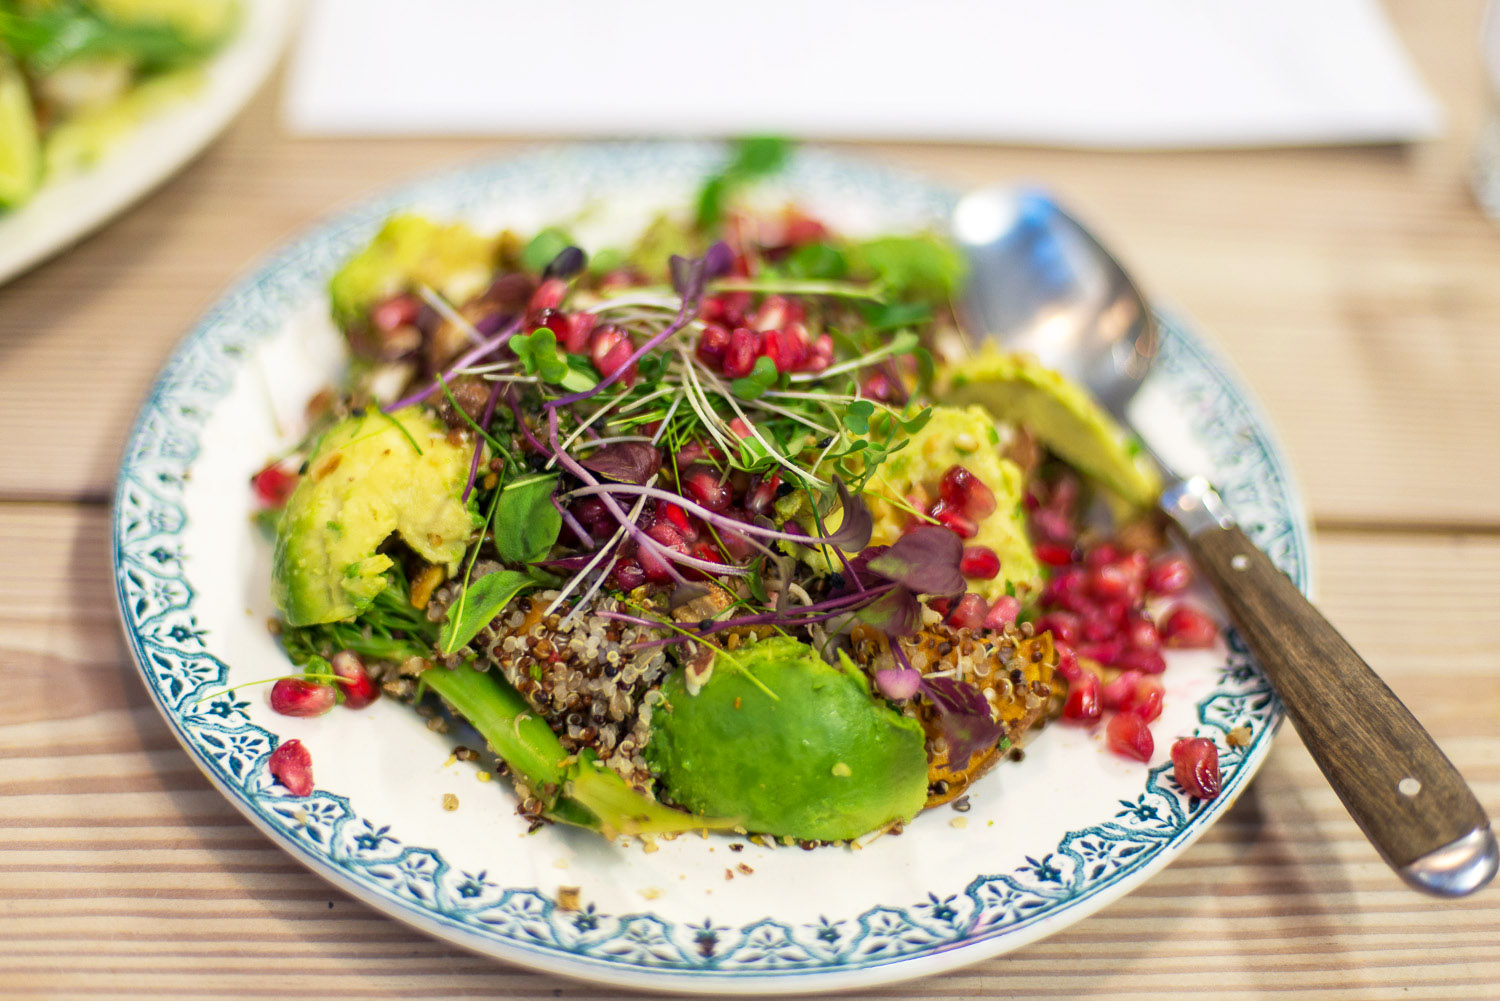 Jamie olivers superfood salad jamie oliver summer salads evening 7 forumfinder Gallery